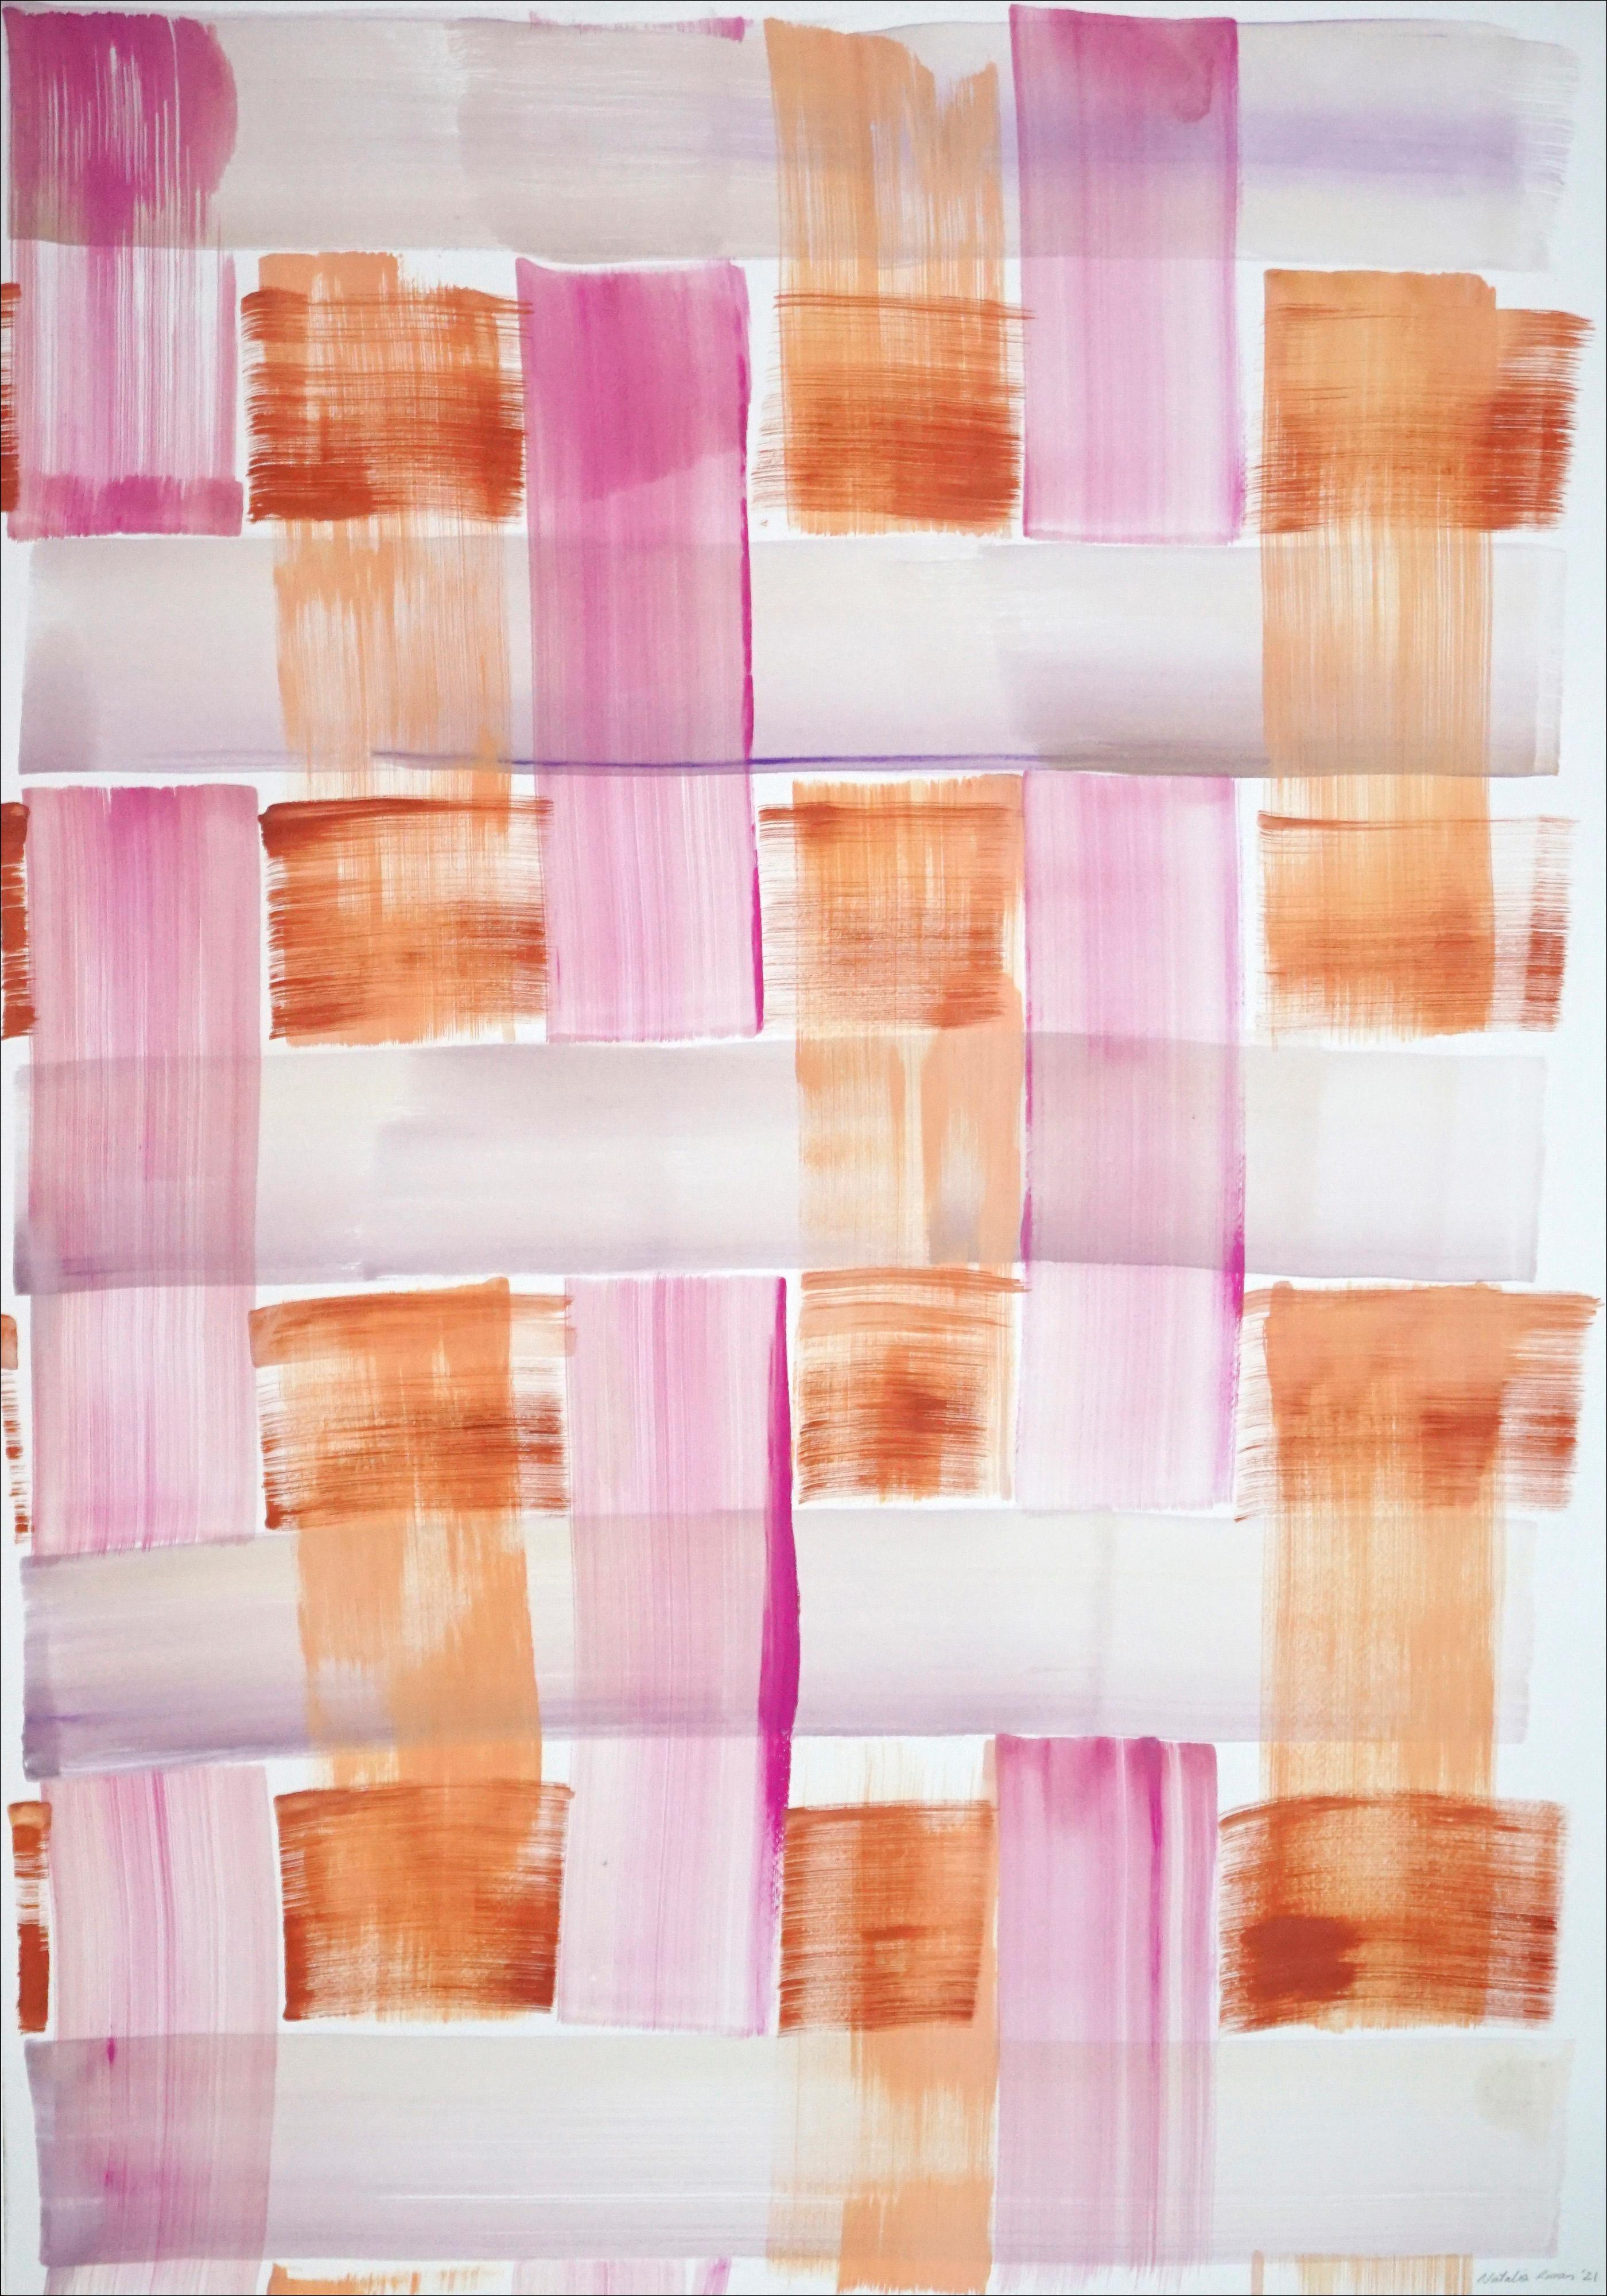 Modern Painting of Pink and Orange Brushstroke Grid, Soft Tones Acrylic on Paper